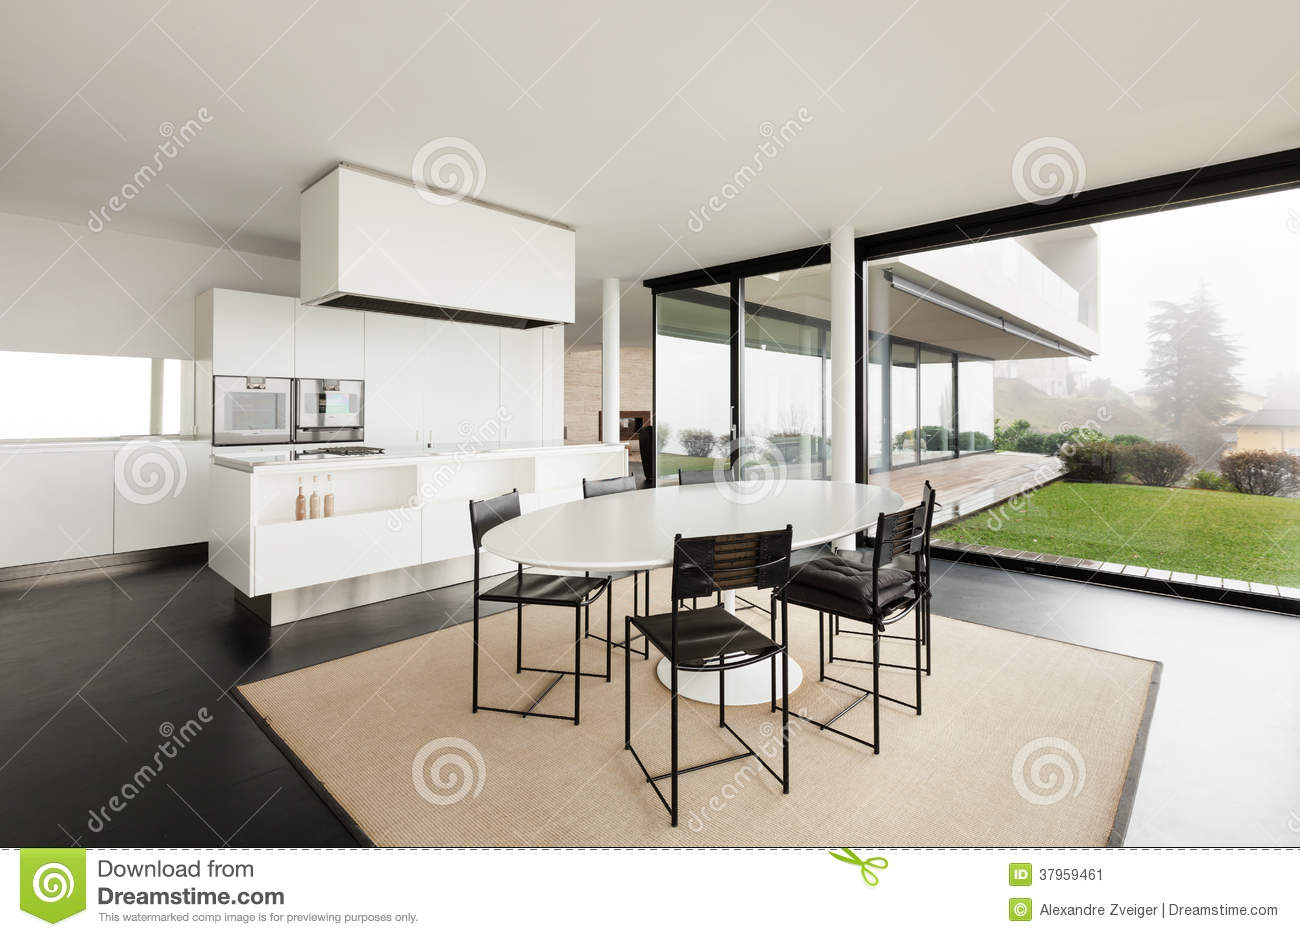 Architecture int rieur d 39 une villa moderne image stock image 37959461 for Photo d interieur